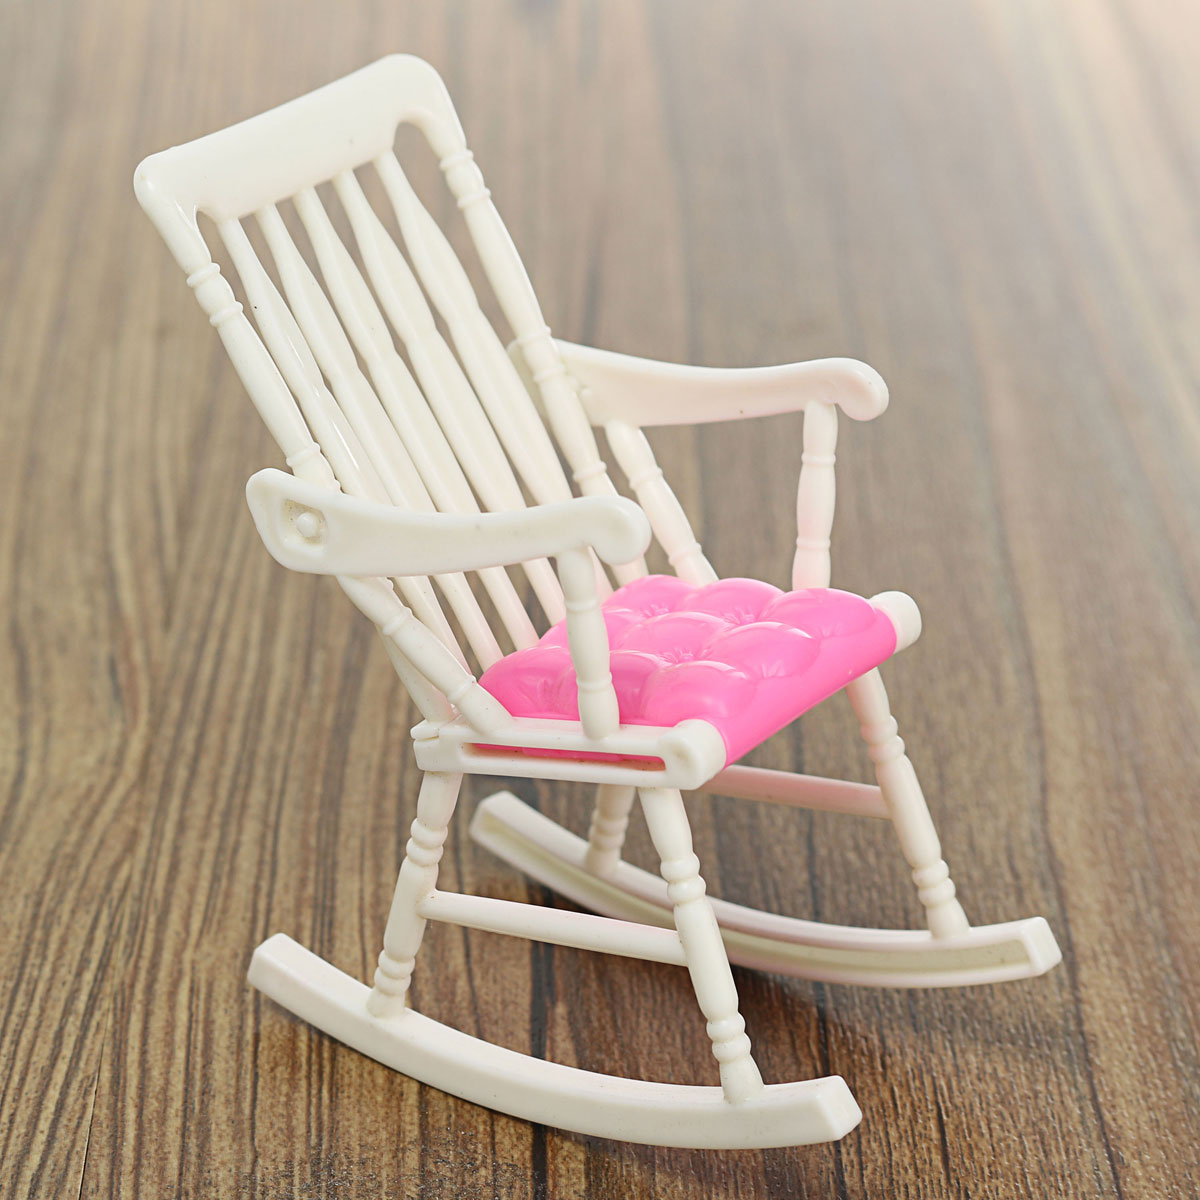 1 Pcs Mini Doll Rocking Chair Accessories For Doll House Room Dollhouse Decoration Rocker font b